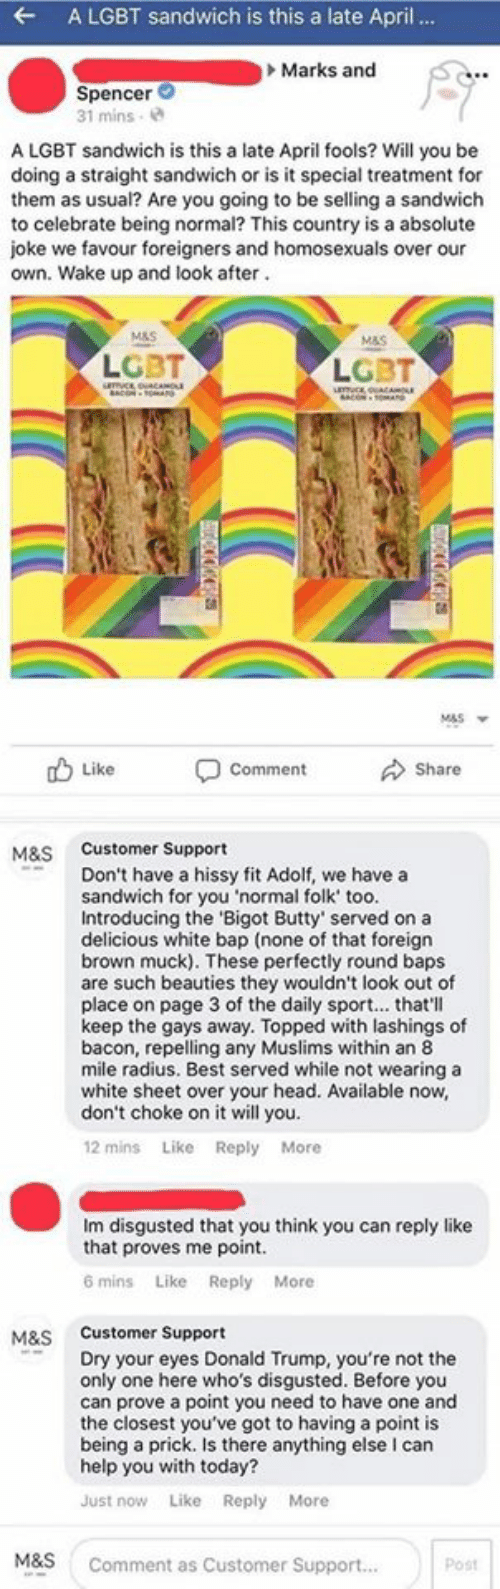 Hissy: A LGBT sandwich is this a late April ..  Marks and  Spencer  31 mins  A LGBT sandwich is this a late April fools? Will you be  doing a straight sandwich or is it special treatment for  them as usual? Are you going to be selling a sandwich  to celebrate being normal? This country is a absolute  joke we favour foreigners and homosexuals over our  own. Wake up and look after.  M&S  M&S  LGBT  LGBT  mcoucO  CON-MAN  umc ouaA  BACONOA  M&S  Share  Like  Comment  Customer Support  M&S  Don't have a hissy fit Adolf, we have a  sandwich for you 'normal folk' too.  Introducing the 'Bigot Butty' served on a  delicious white bap (none of that foreign  brown muck). These perfectly round baps  are such beauties they wouldn't look out of  place on page 3 of the daily sport... that'll  keep the gays away. Topped with lashings of  bacon, repelling any Muslims within an 8  mile radius. Best served while not wearing a  white sheet over your head. Available now,  don't choke on it will you  12 mins Like Reply More  Im disgusted that you think you can reply like  that proves me point.  6 mins Like Reply More  M&S Customer Support  Dry your eyes Donald Trump, you're not the  only one here who's disgusted. Before you  can prove a point you need to have one and  the closest you've got to having a point is  being a prick. Is there anything else I can  help you with today?  Like Reply More  Just now  M&S  Comment as Customer Support...  Post